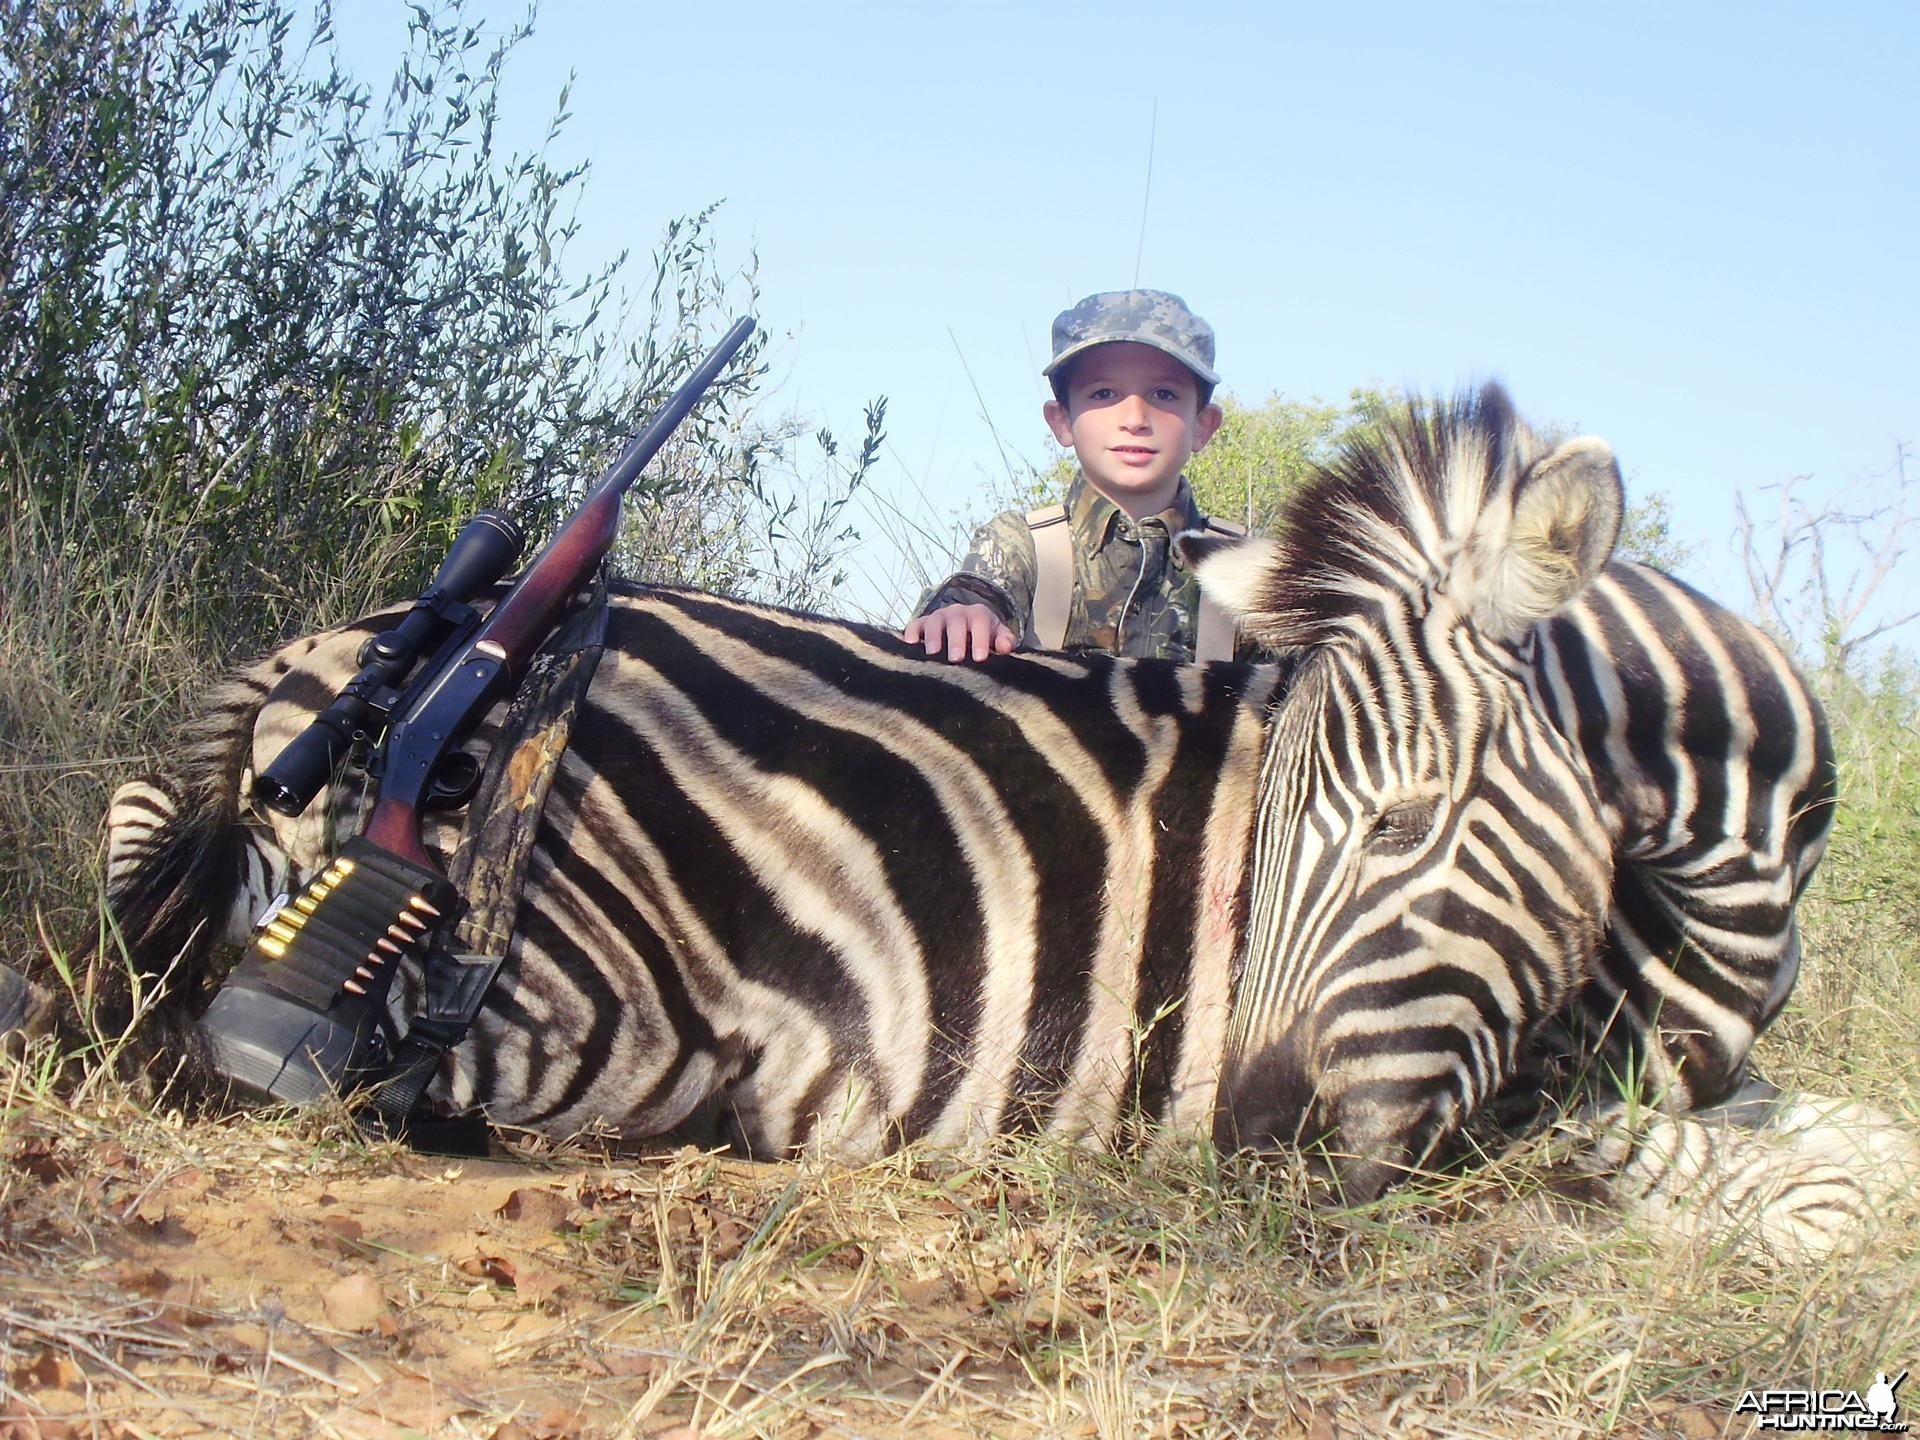 My son's first African animal he's was 7 at the time